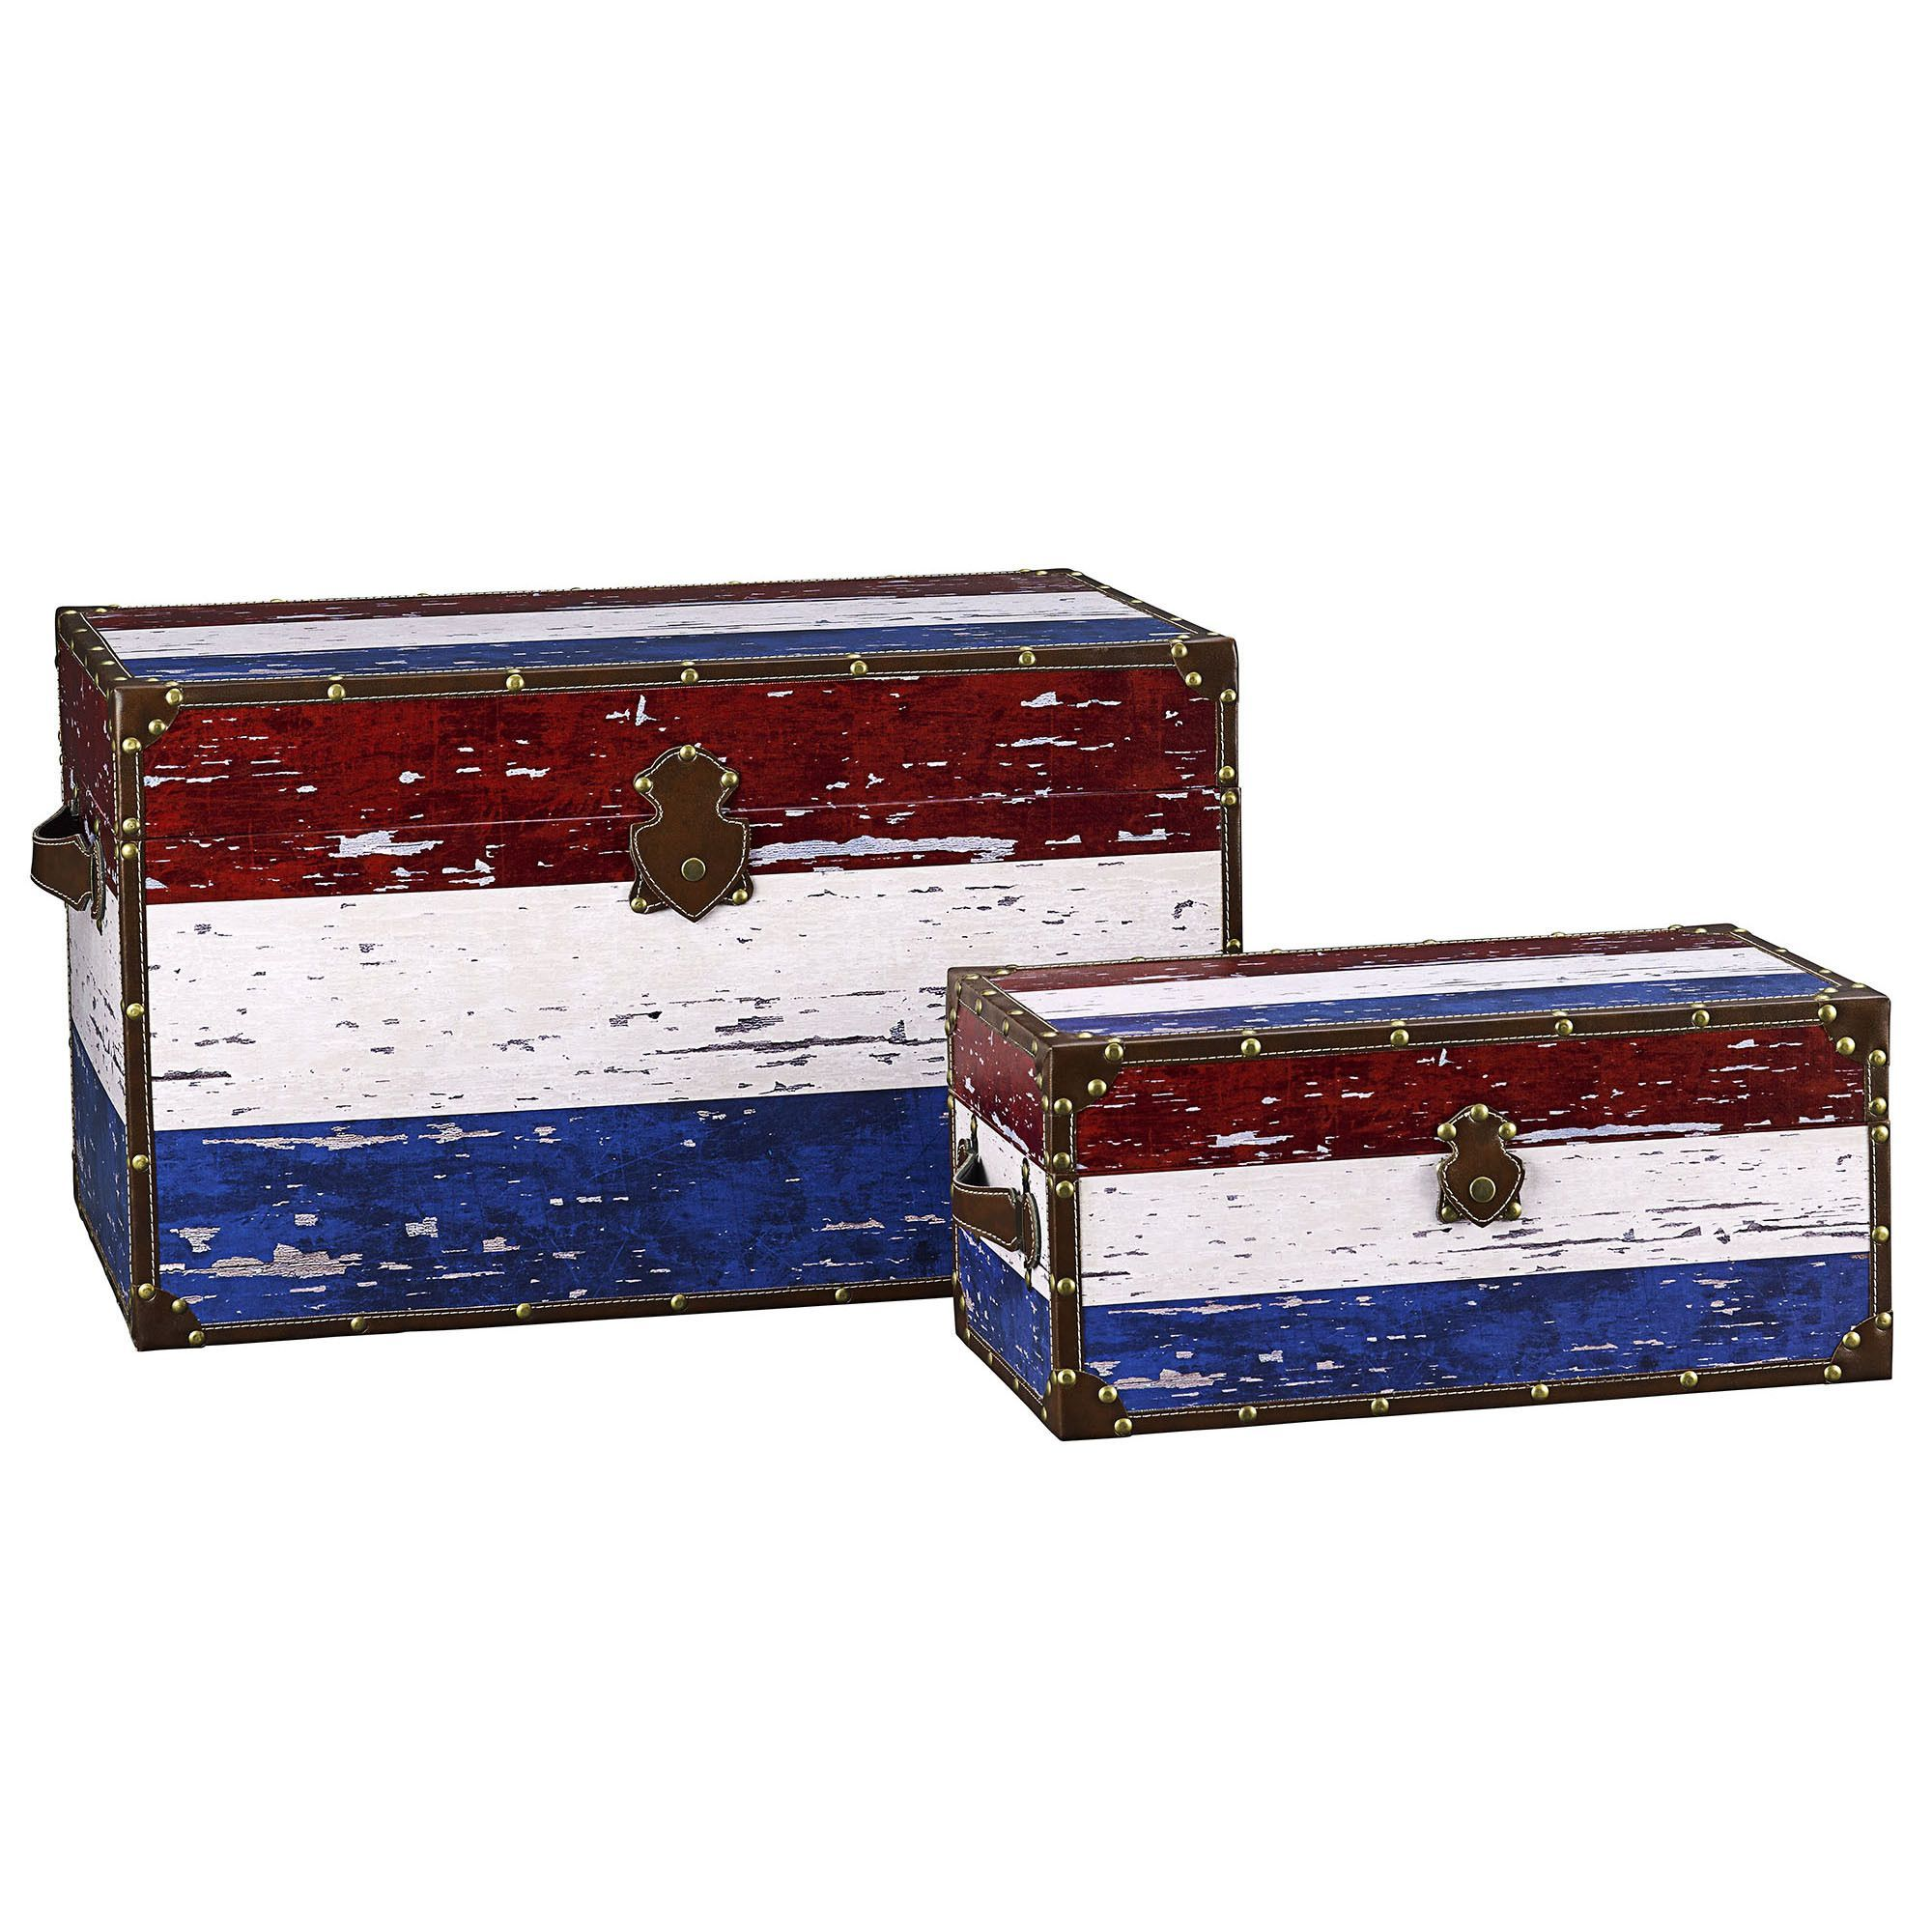 Storage Trunk Chest Vintage Wooden Decorative Steamer Antique Footlocker Table At Harvey Haley For Only 196 32